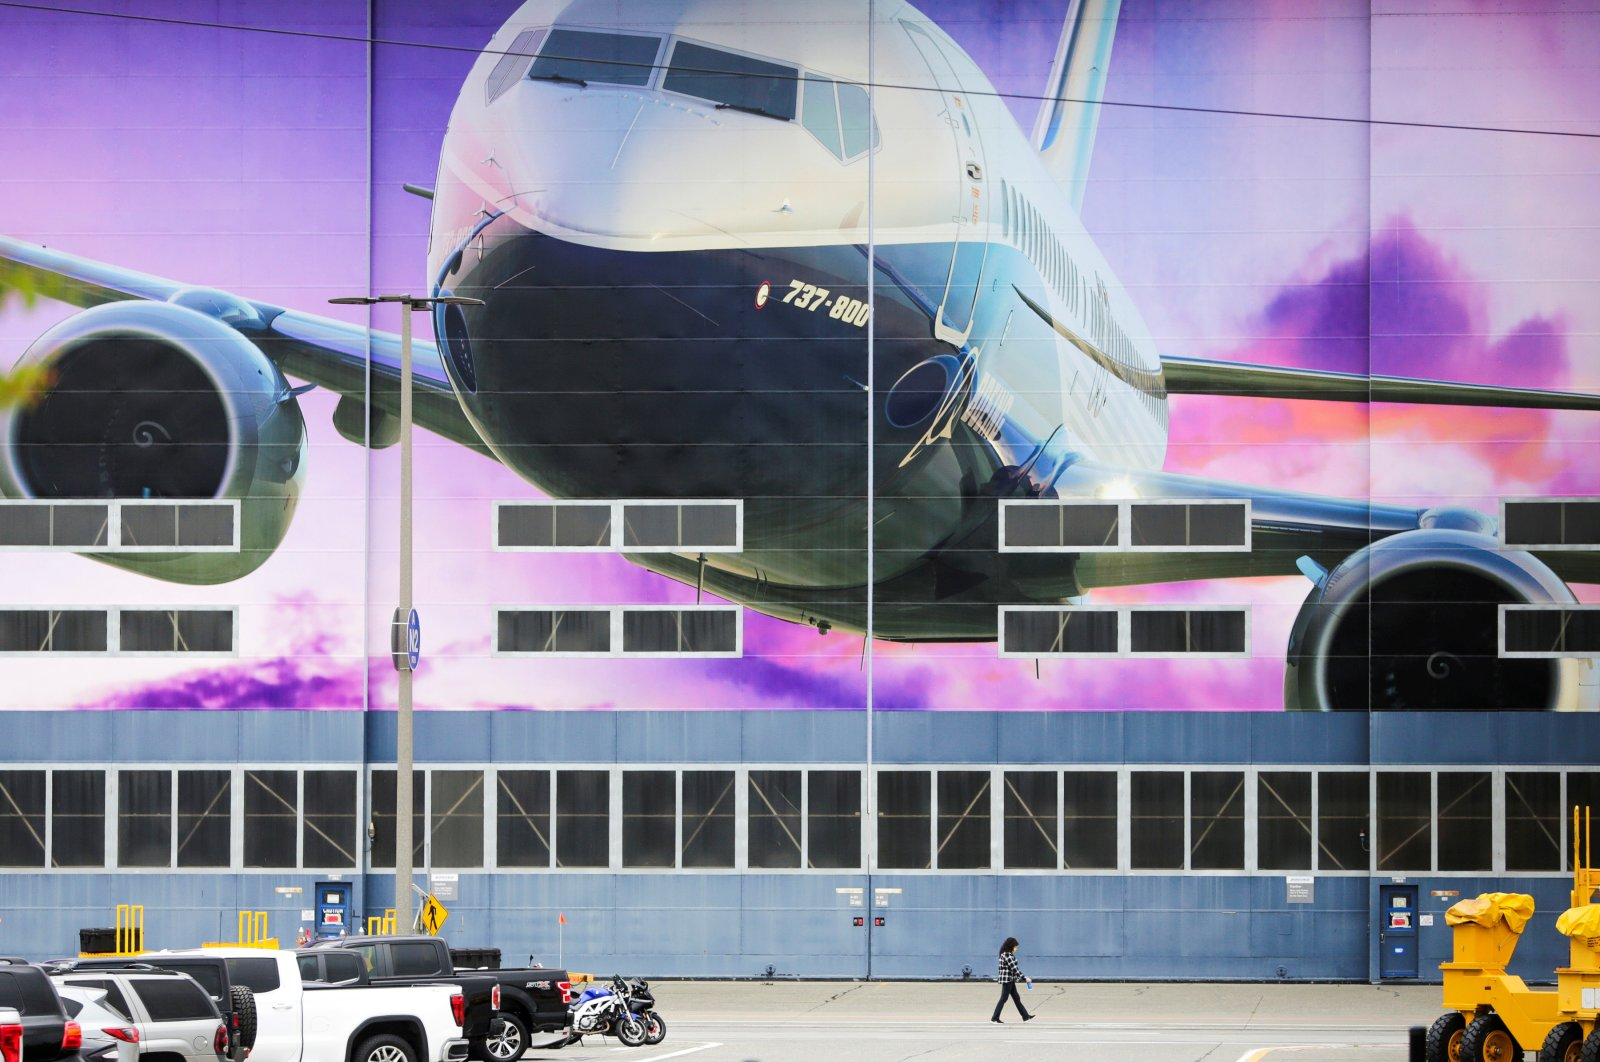 A Boeing 737-800 airliner is pictured at the Boeing Renton Factory as commercial airplane production resumes following a suspension of operations last month in response to the coronavirus pandemic, Renton, Washington, U.S., April 21, 2020. (Reuters Photo)